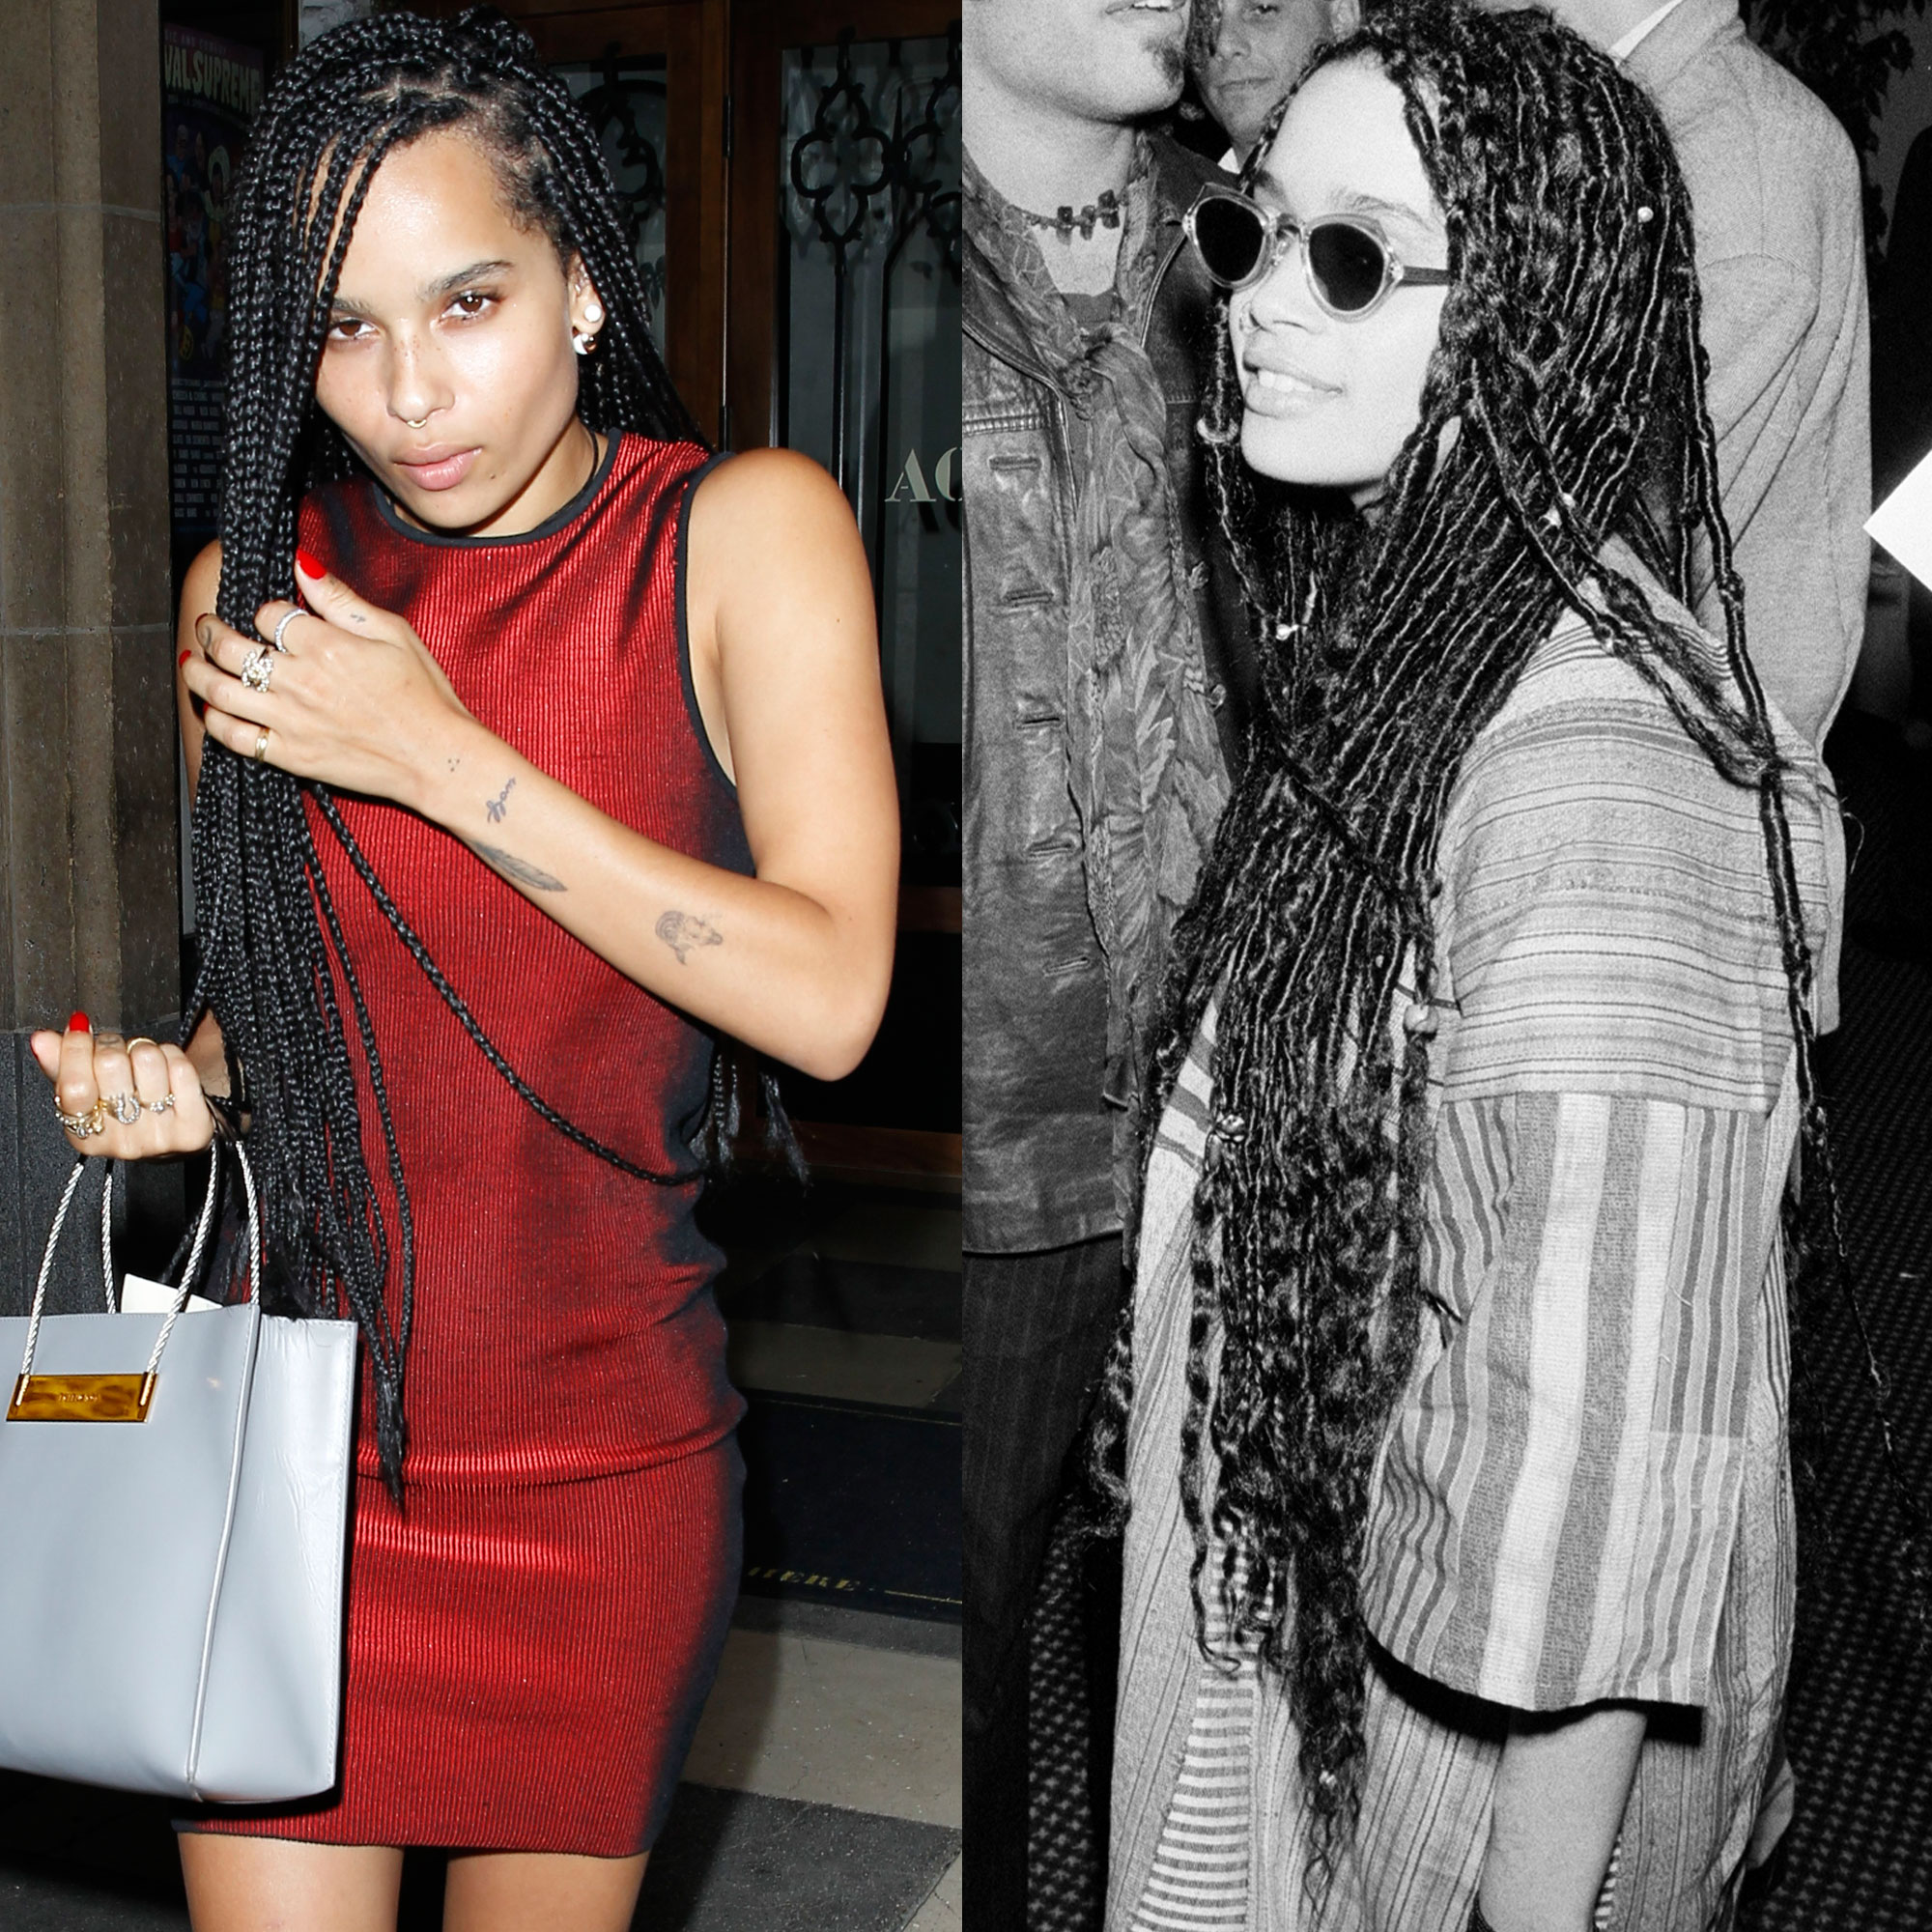 Zoë Kravitz References Lisa Bonet